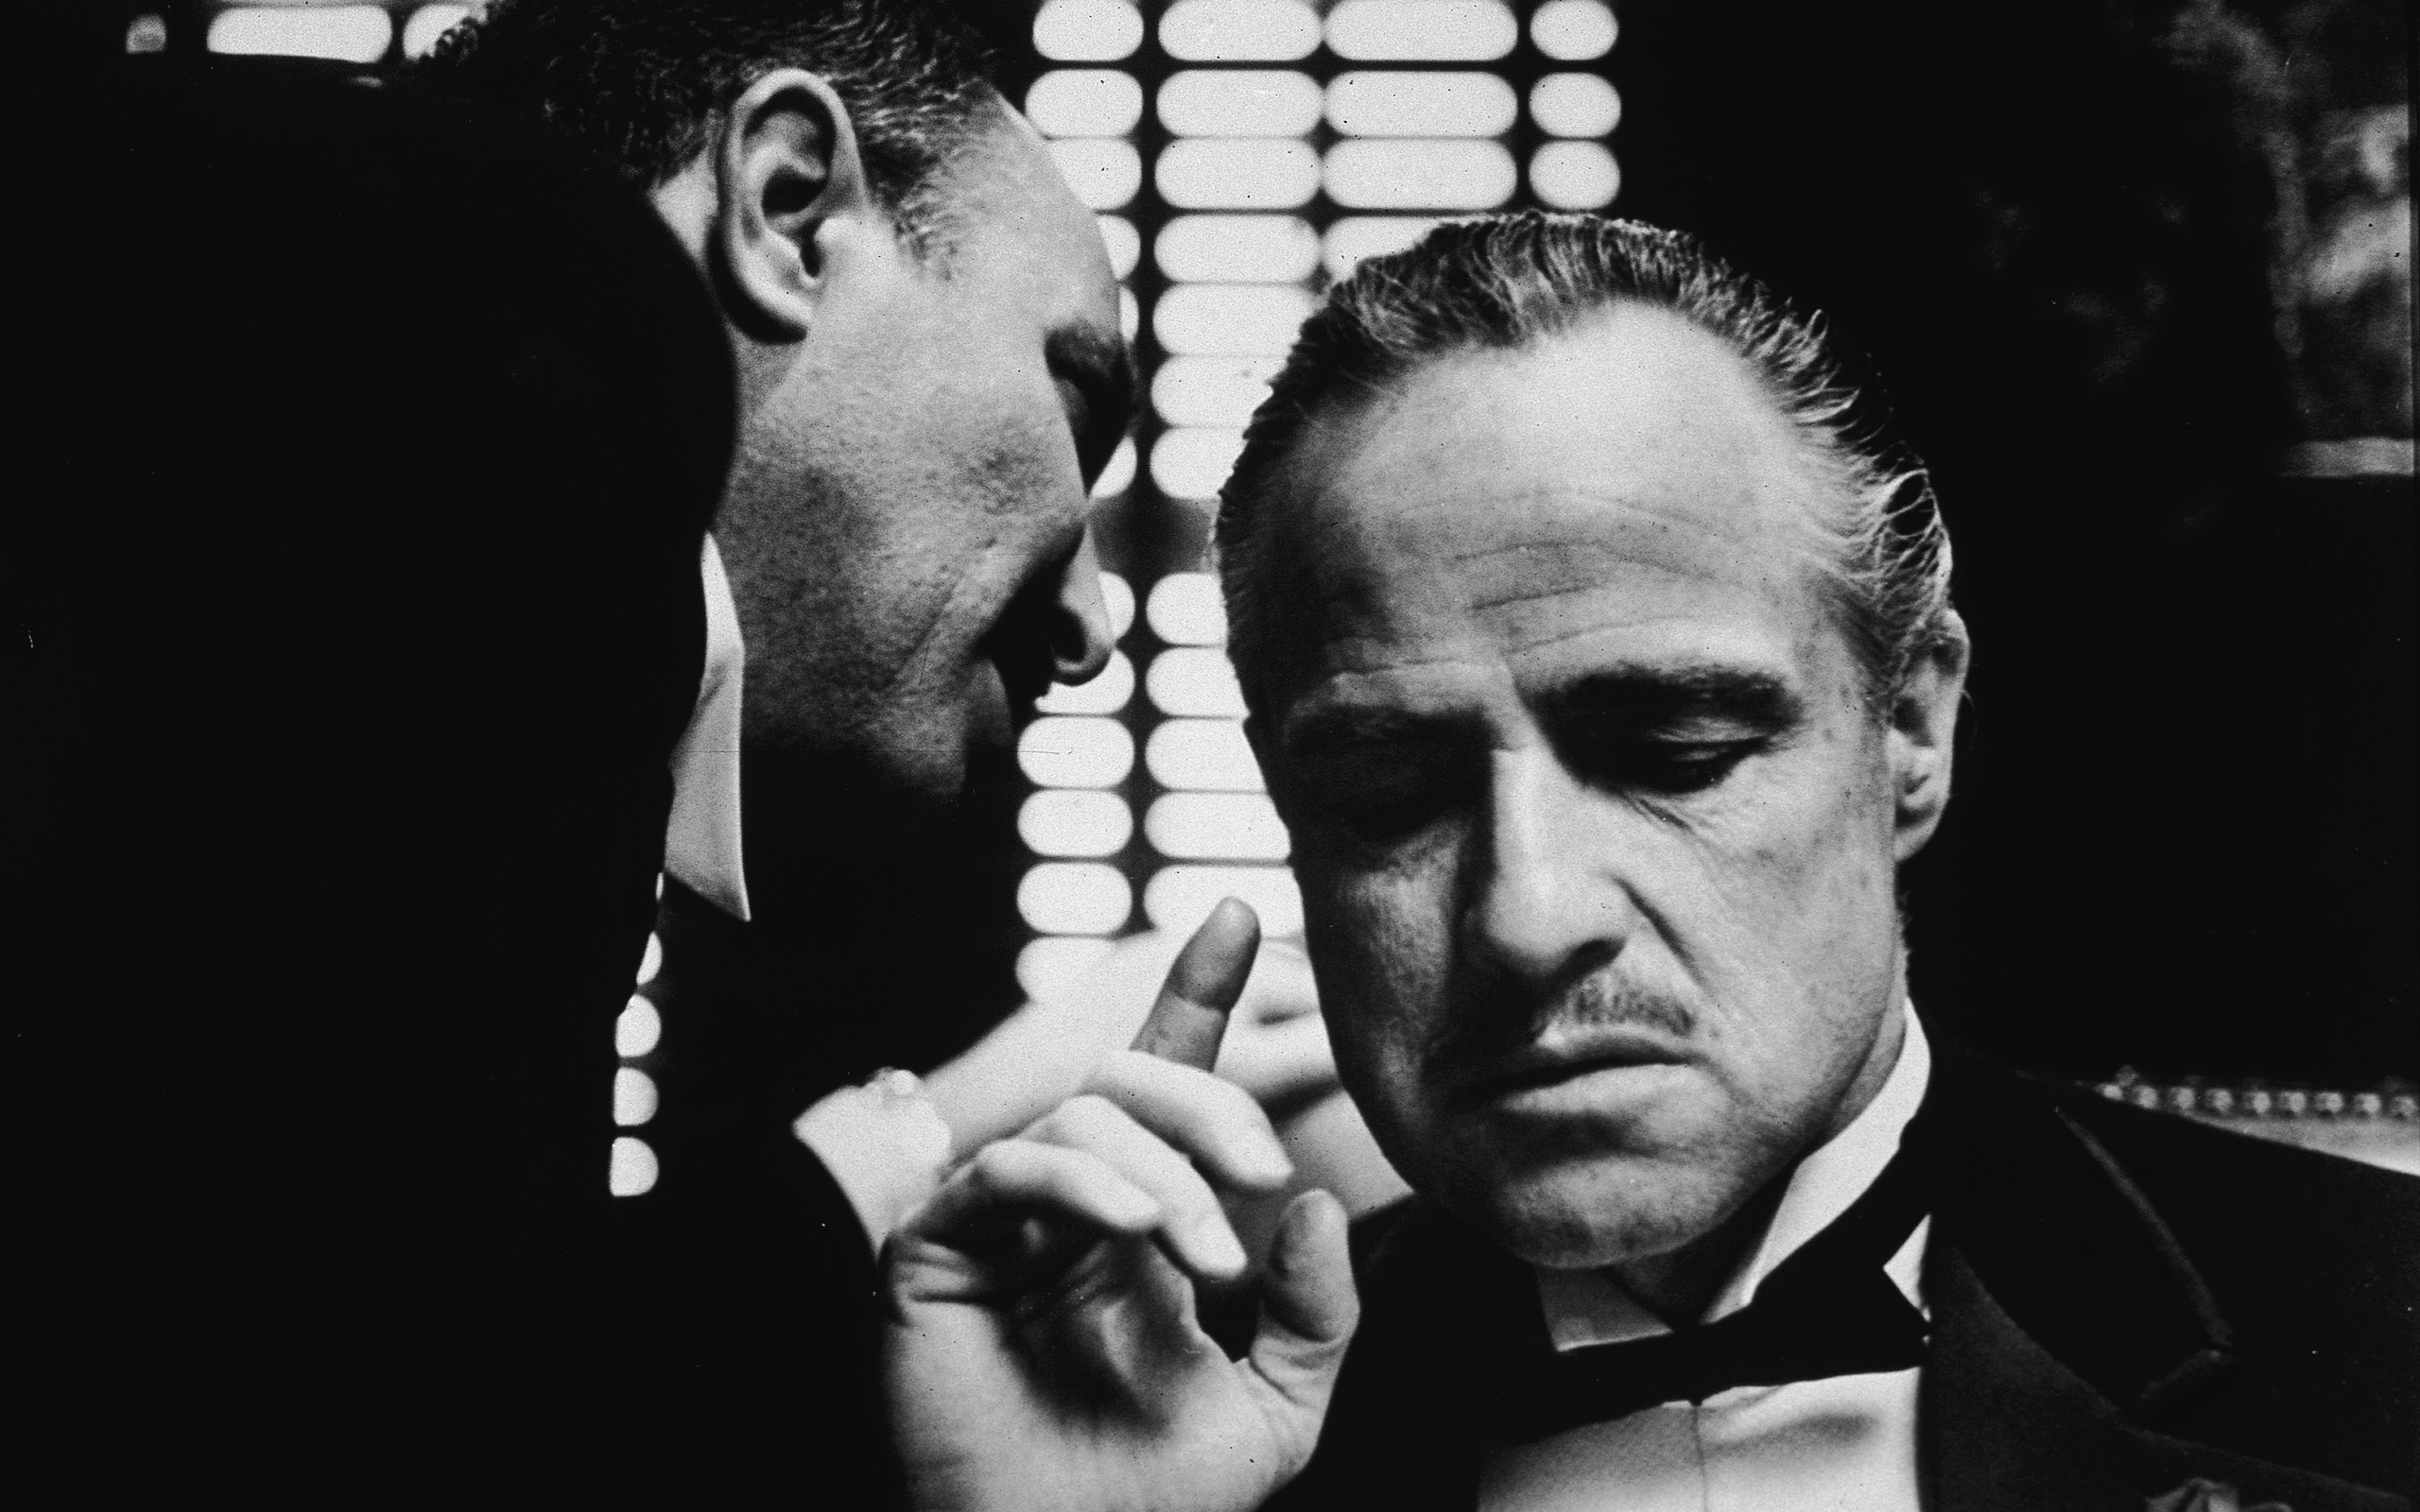 original wallpaper download: Don Corleone Godfather - 2560x1600